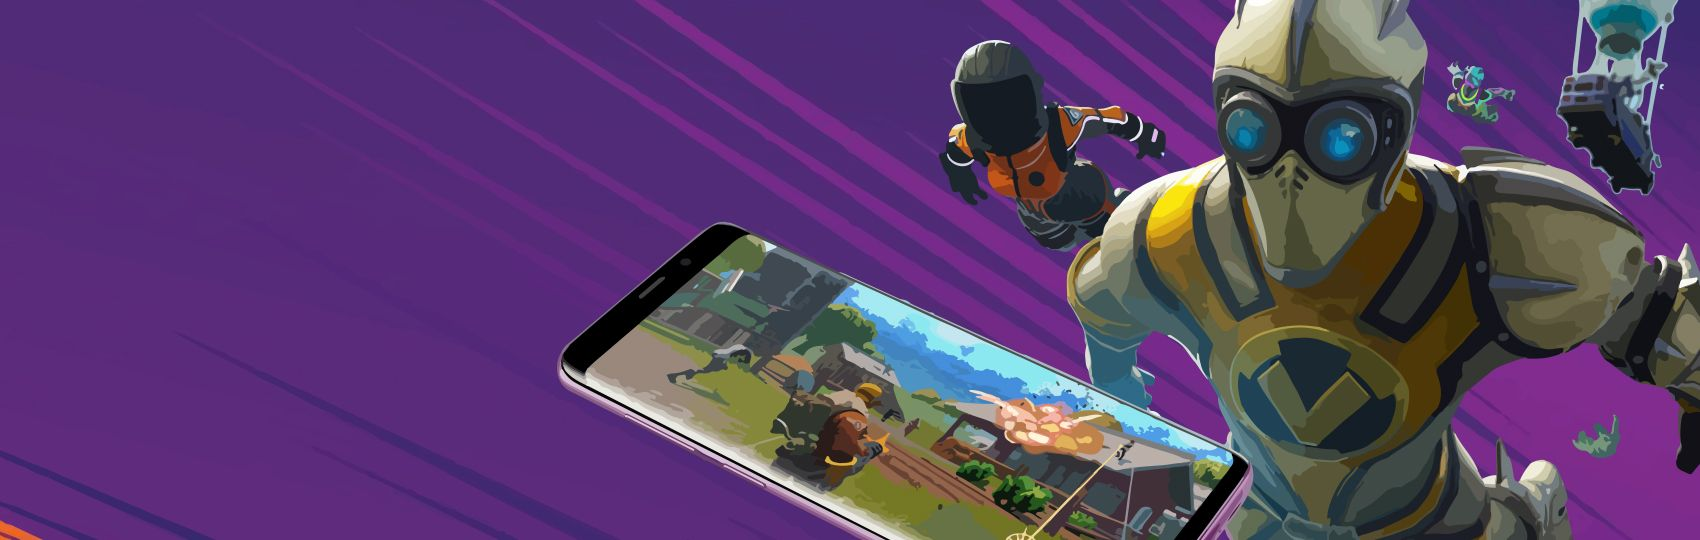 Fortnite on Android launch technical post